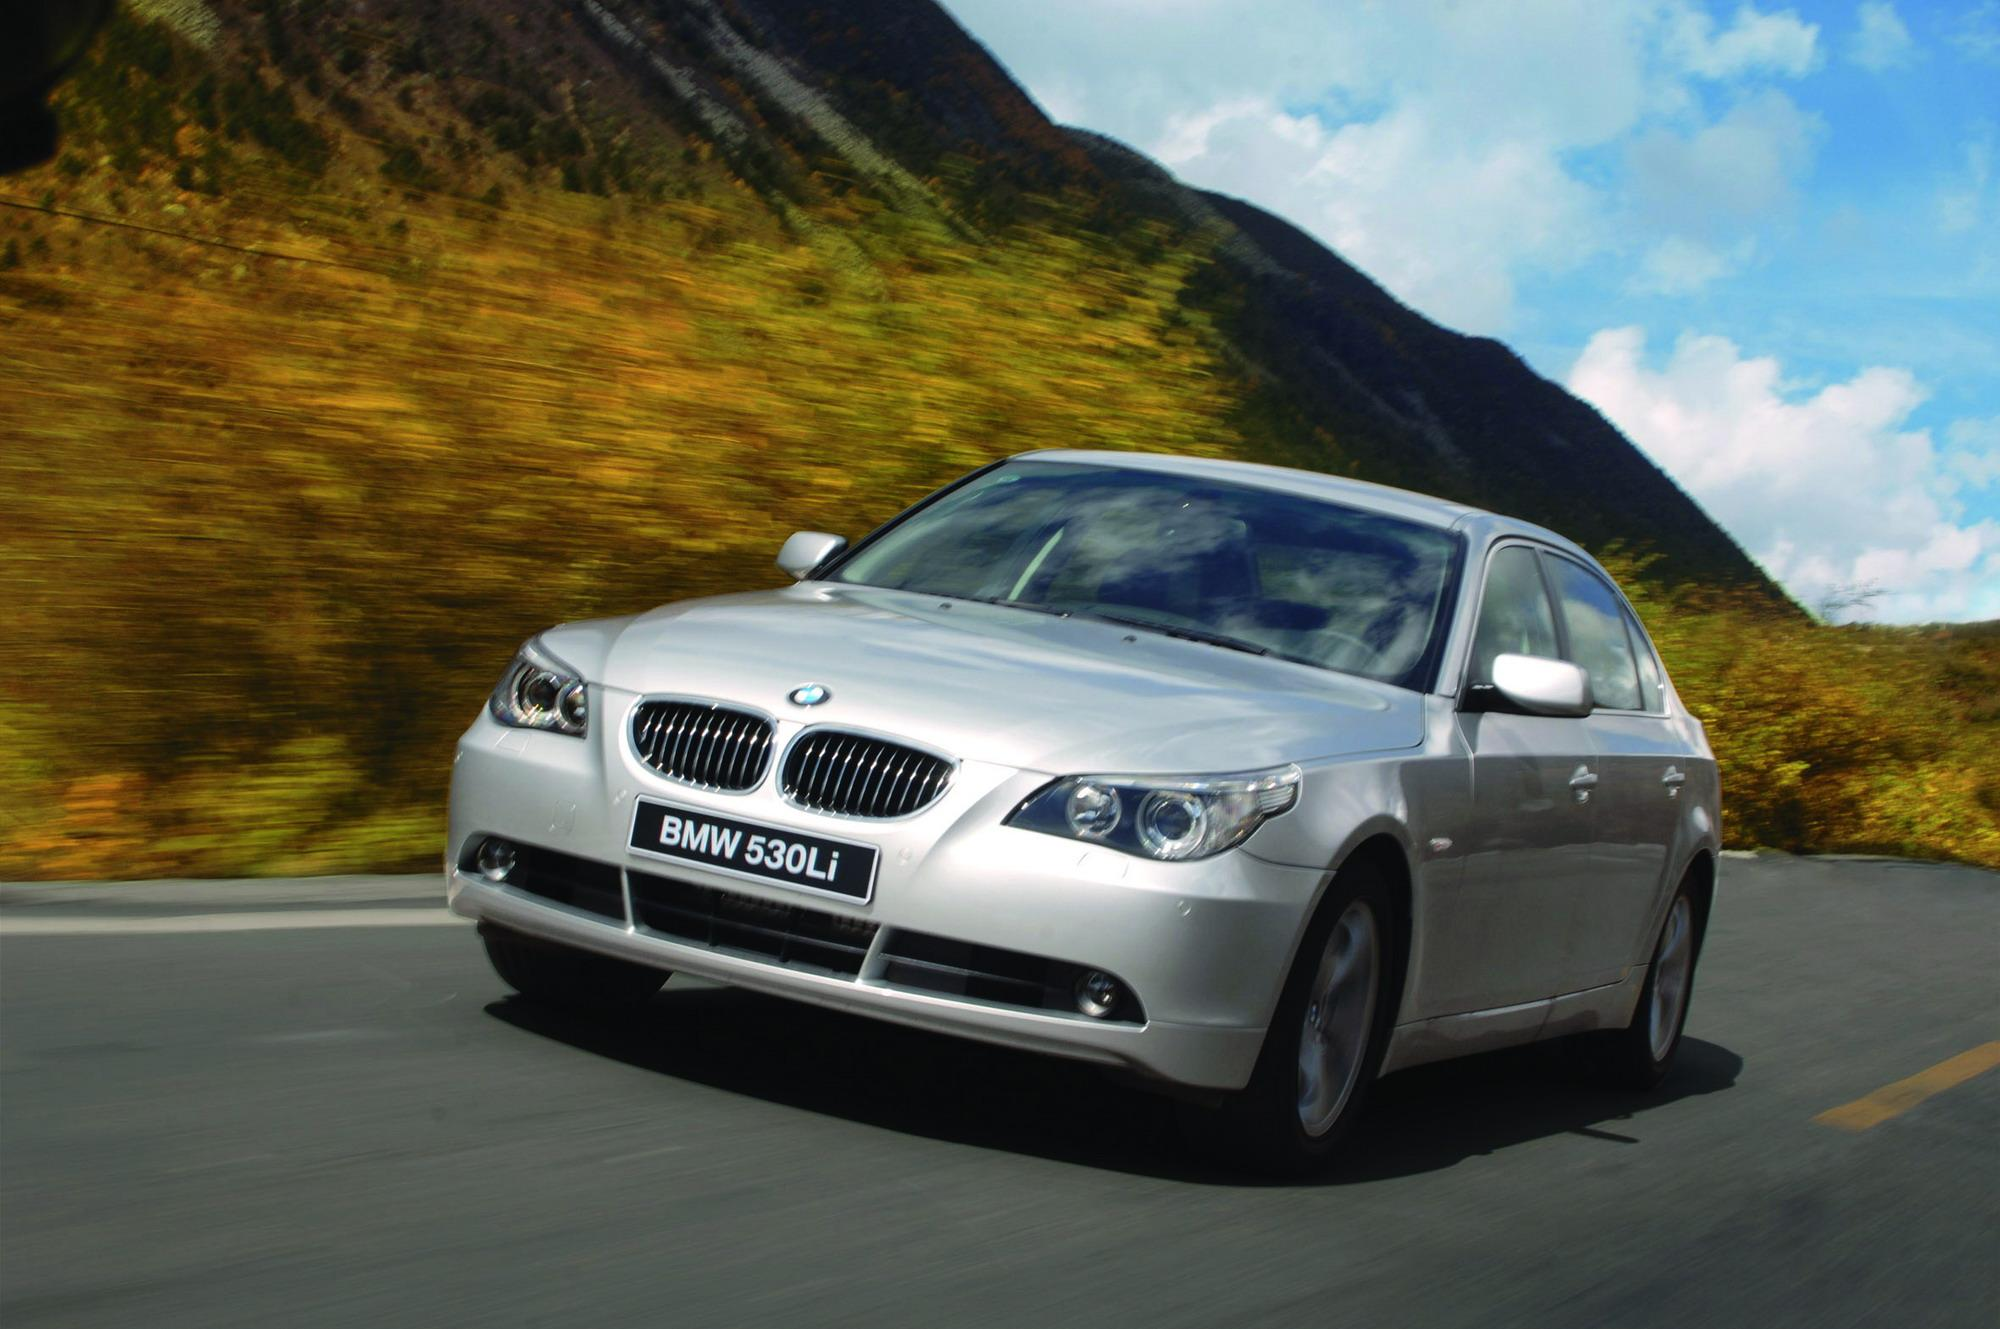 2004 2010 bmw 5 series e60 gallery 334983 top speed. Black Bedroom Furniture Sets. Home Design Ideas